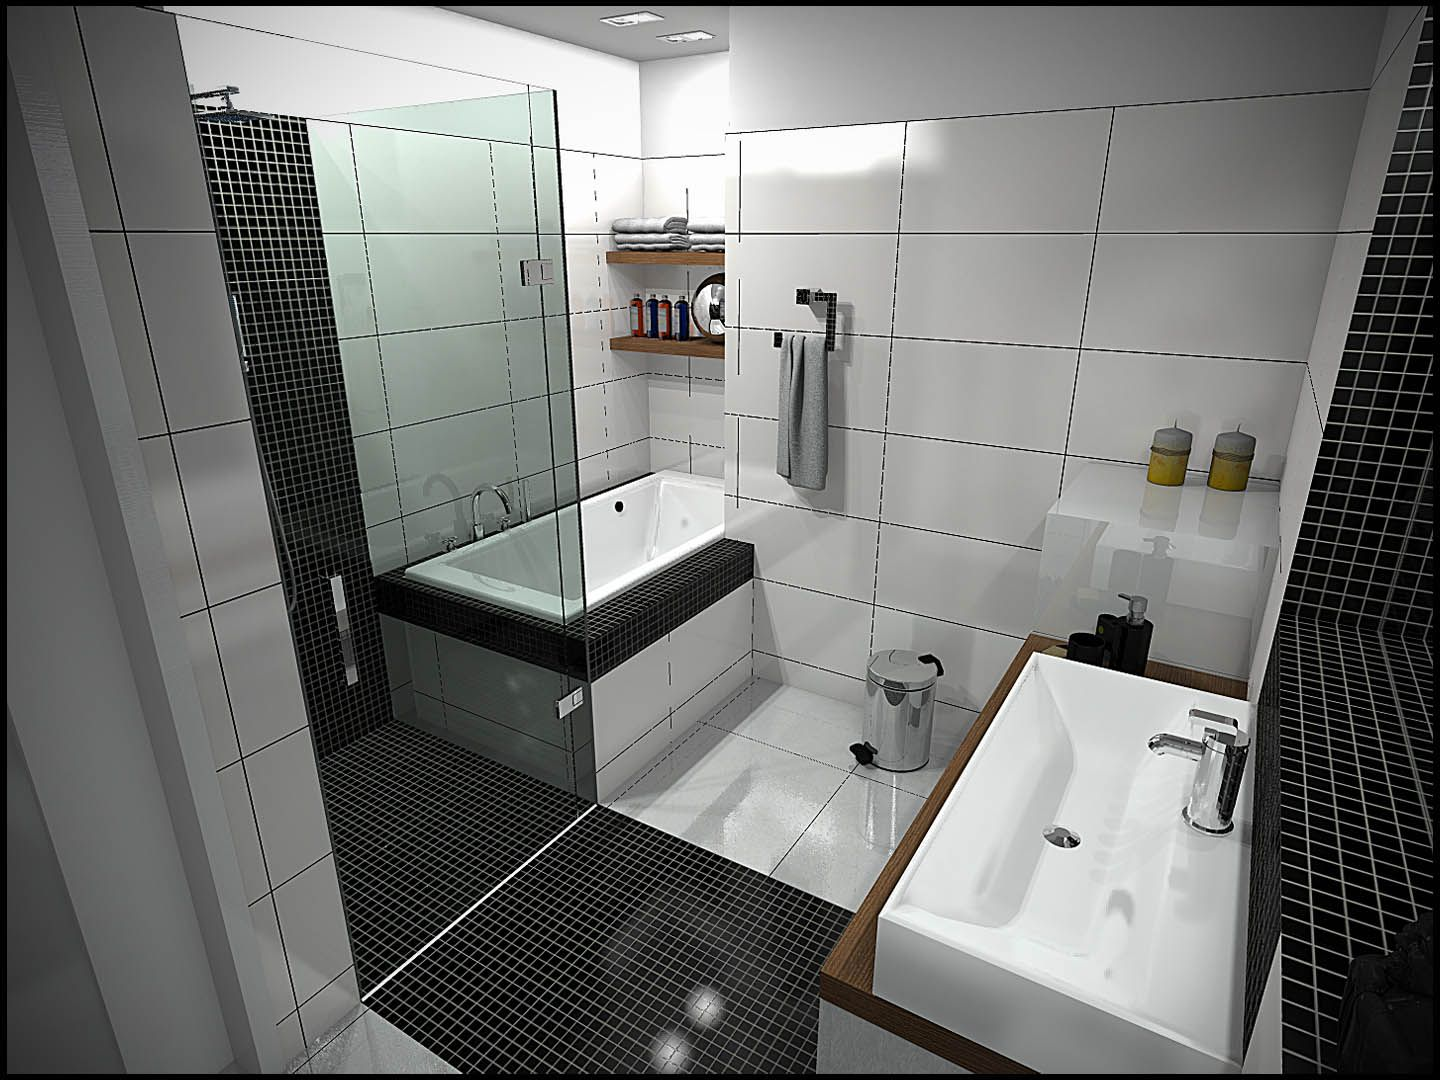 Modish Small Bathroom Interior Design In Black And White Colors